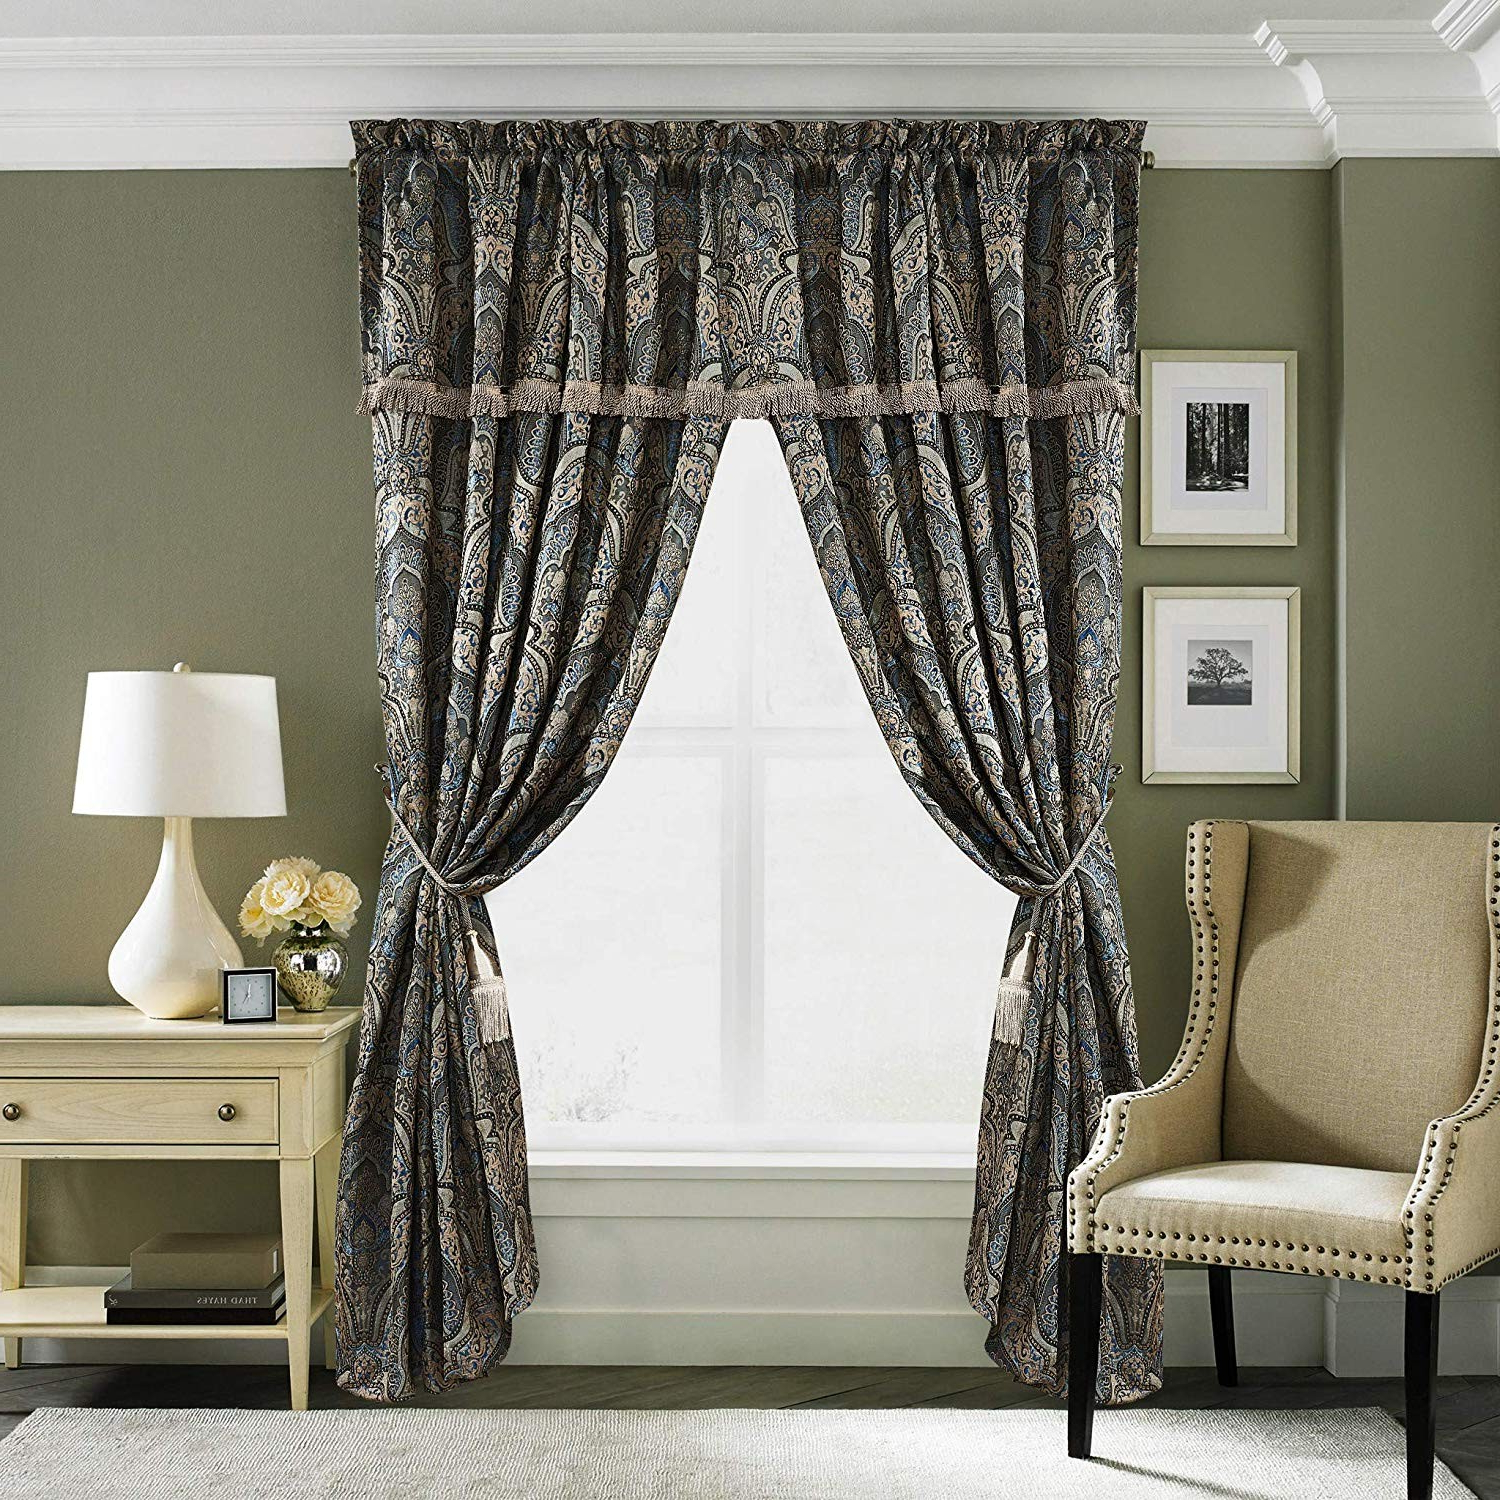 Most Recently Released Seville 4 Piece Jacquard Medallion Paisley Window Curtain Intended For Medallion Window Curtain Valances (View 17 of 20)